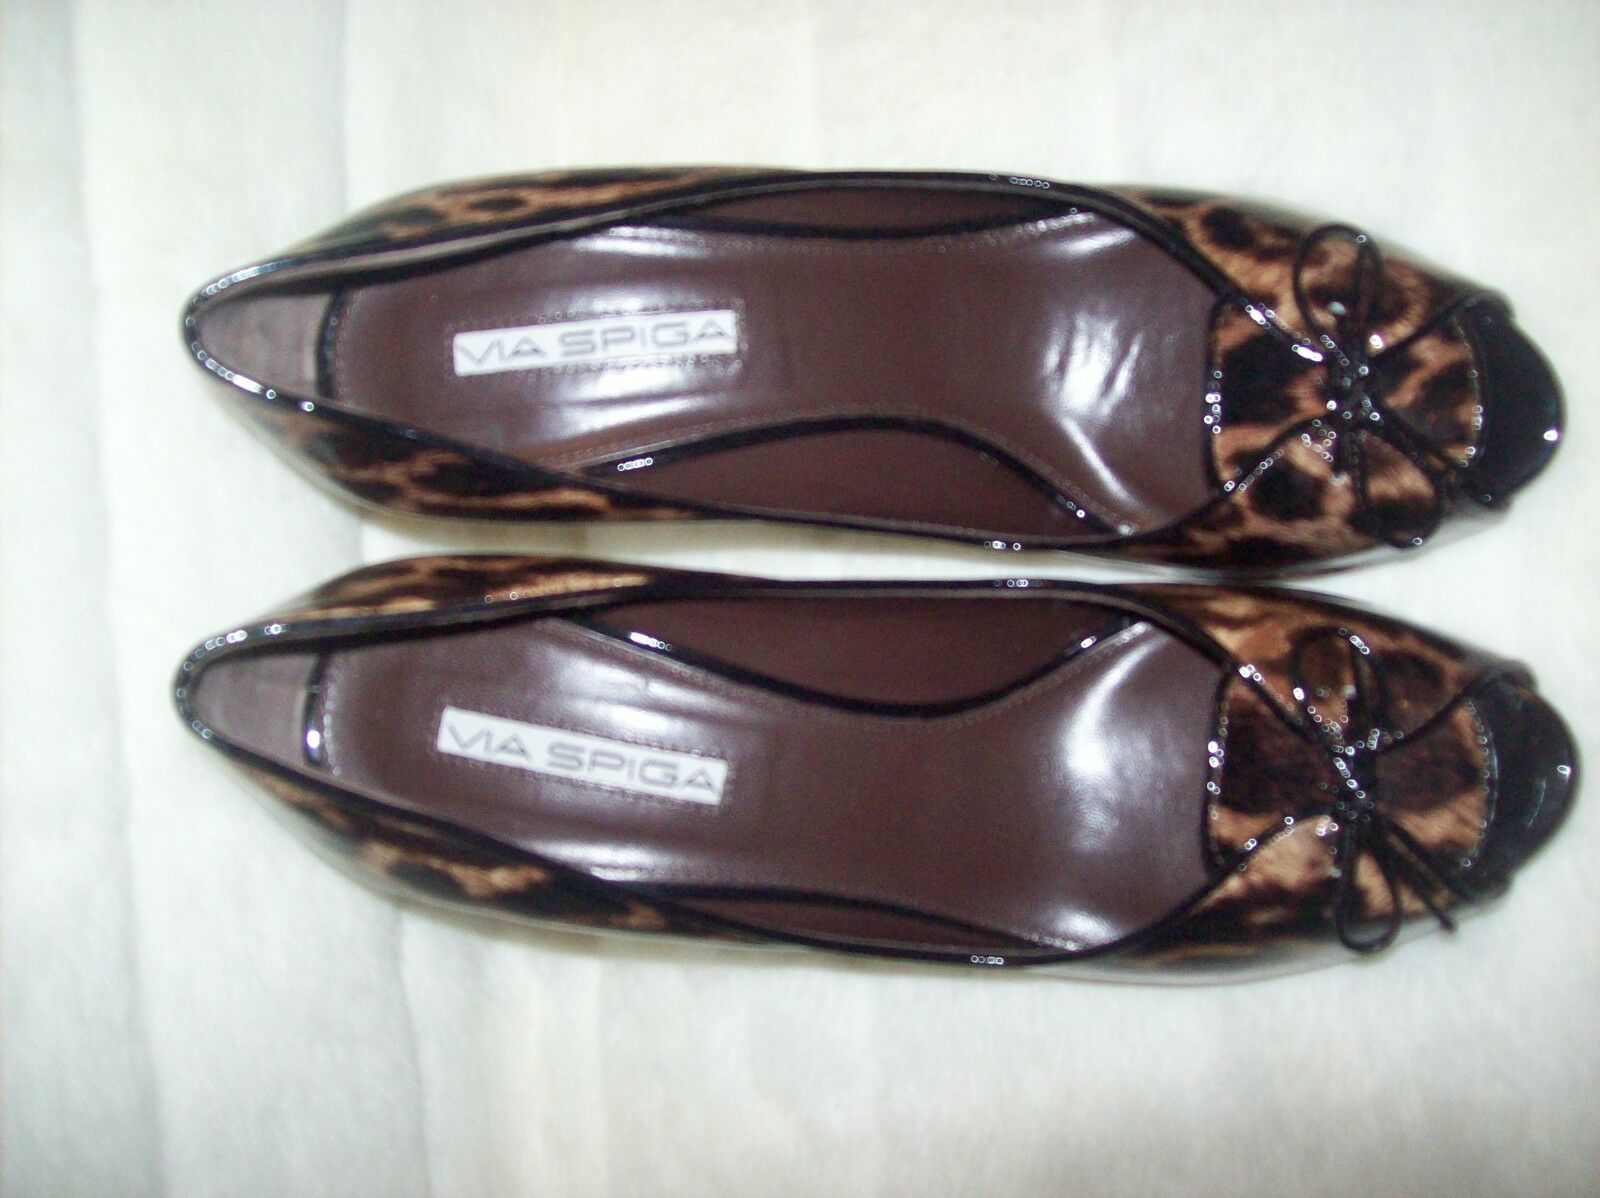 VIA ANIMAL SPIGA  PATENT LEATHER ANIMAL VIA PRINT Pumps Schuhe SZ 8.5 290 new 28175b